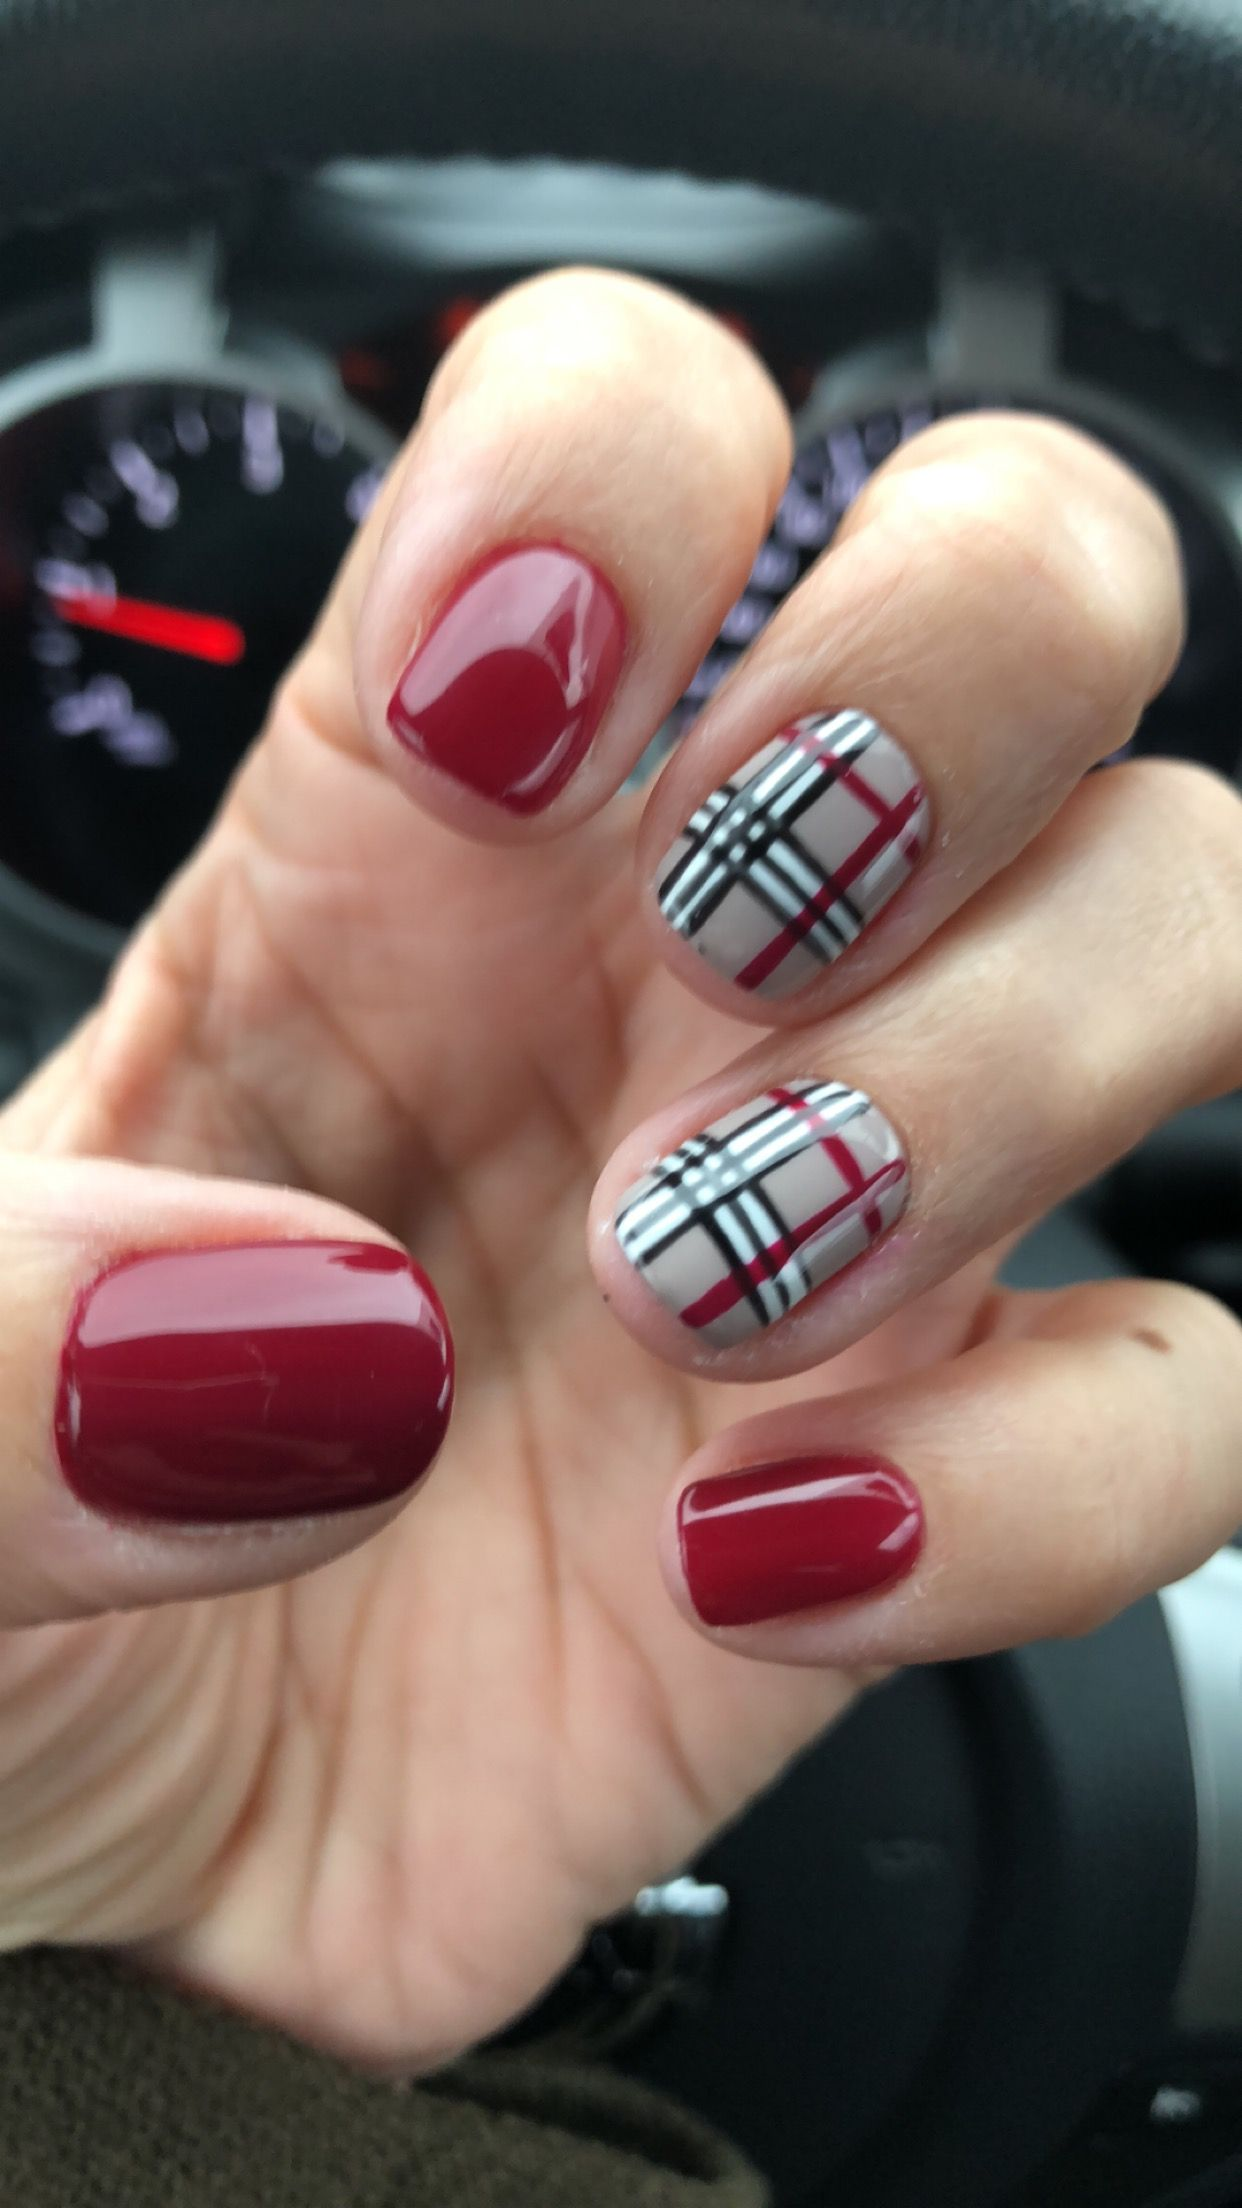 Pin by Susan Beauté on Ongles   Gel nails, Christmas nails, Plaid ...